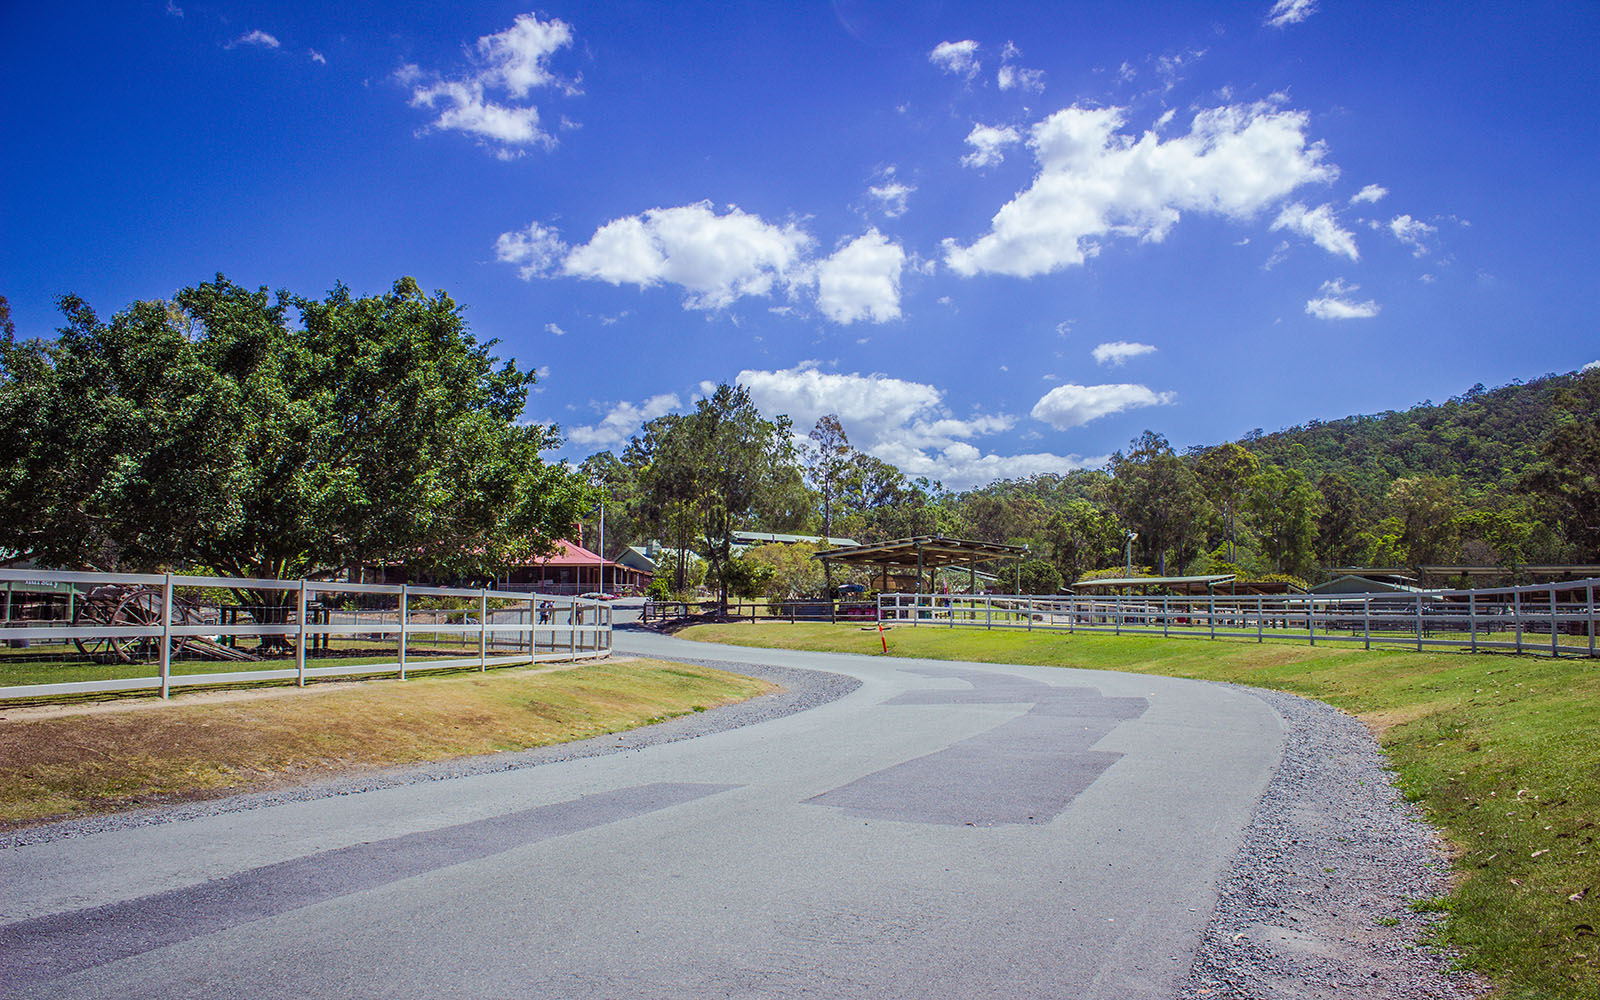 Paradise country farm Brisbane Australia